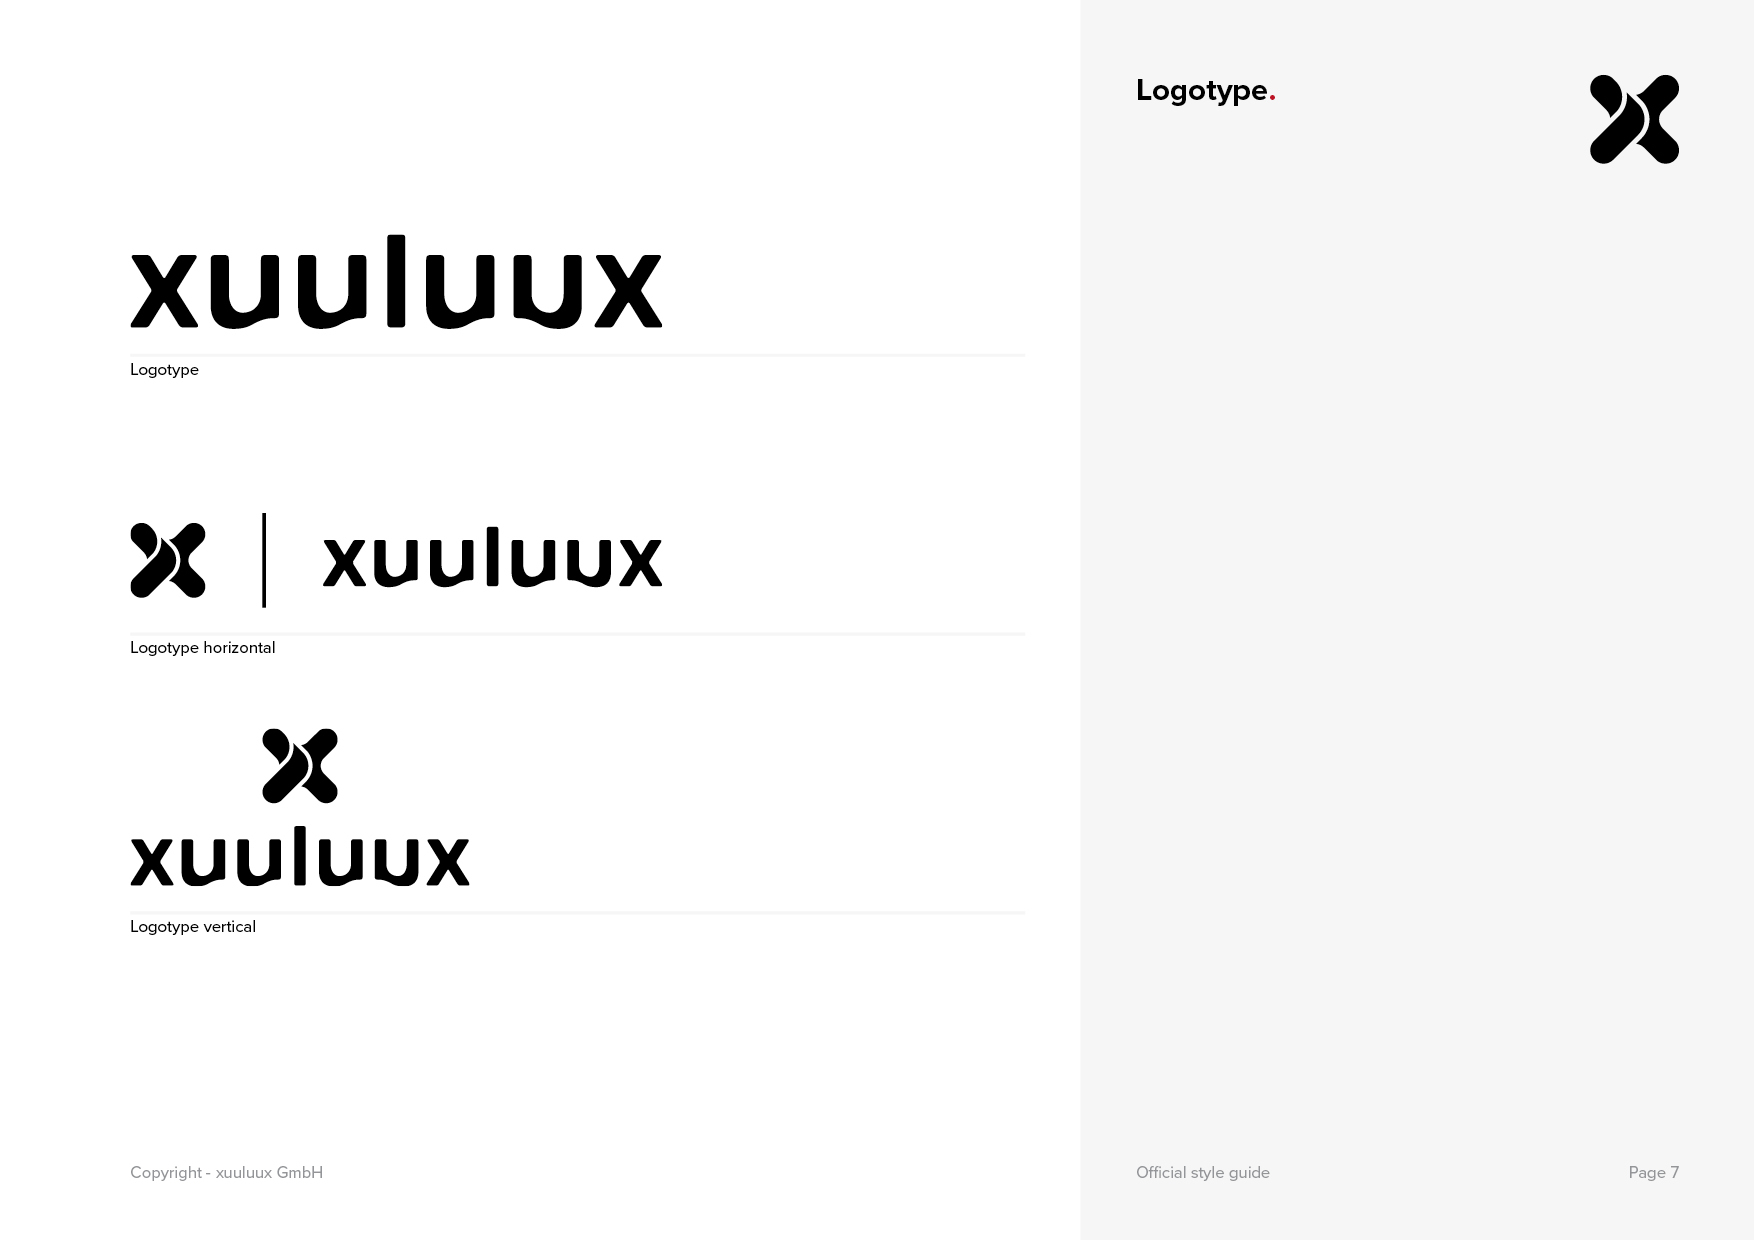 Page 7 of the official xuuluux Style Guide